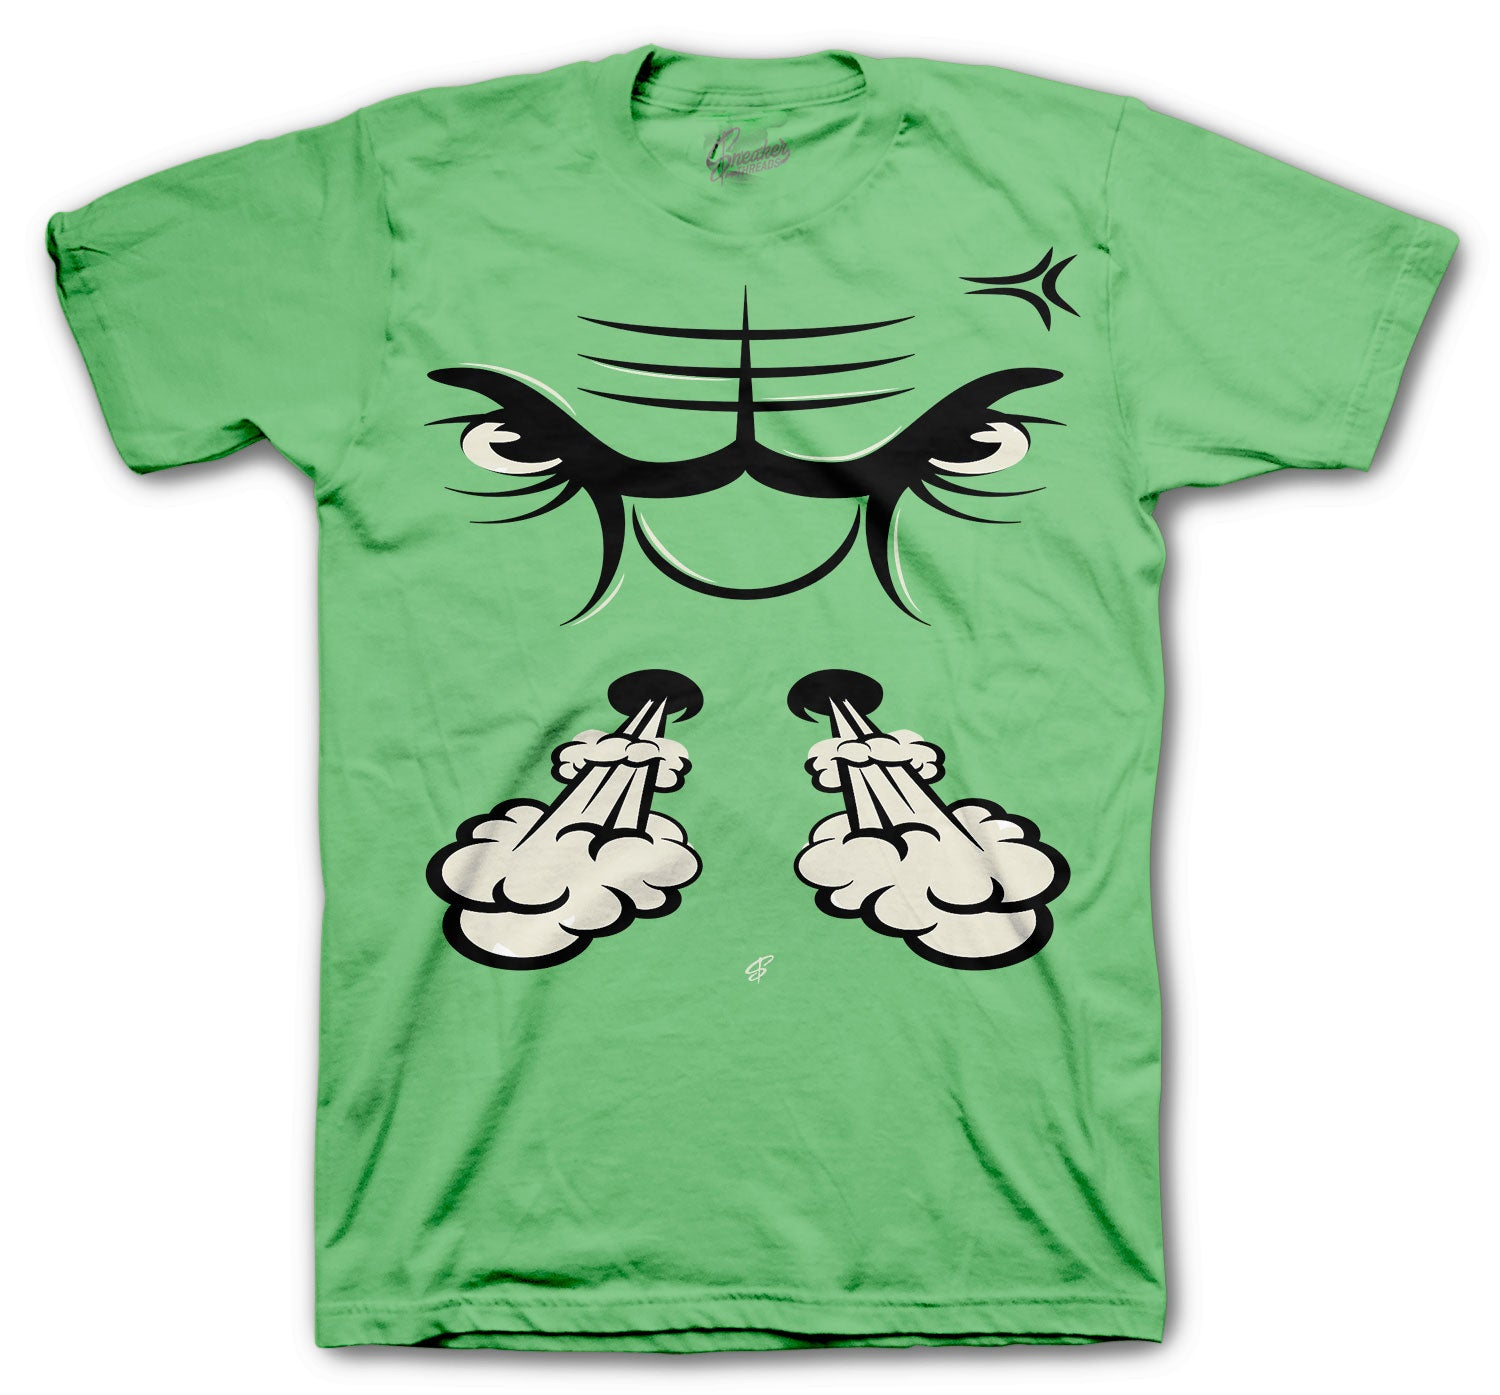 Jordan 1 Zen Green Raging Face Shirt